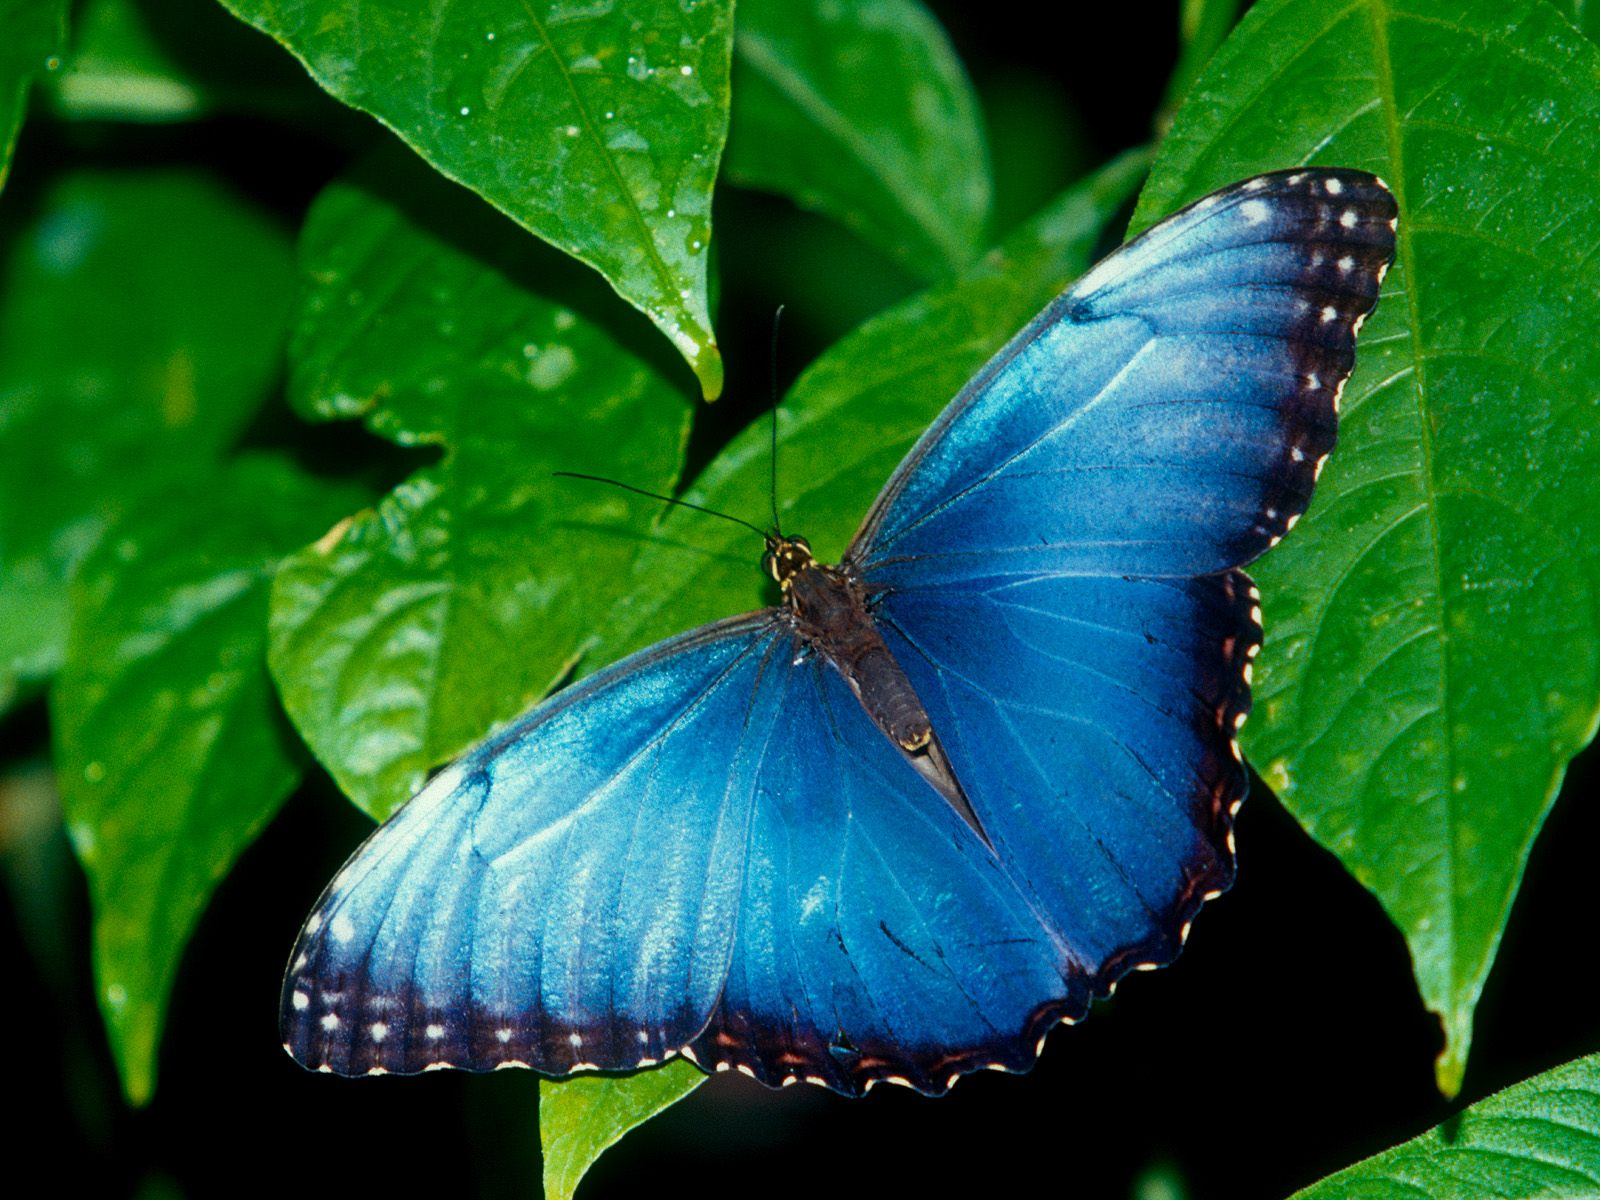 Butterfly wallpaperamazedwallpaper 1600x1200